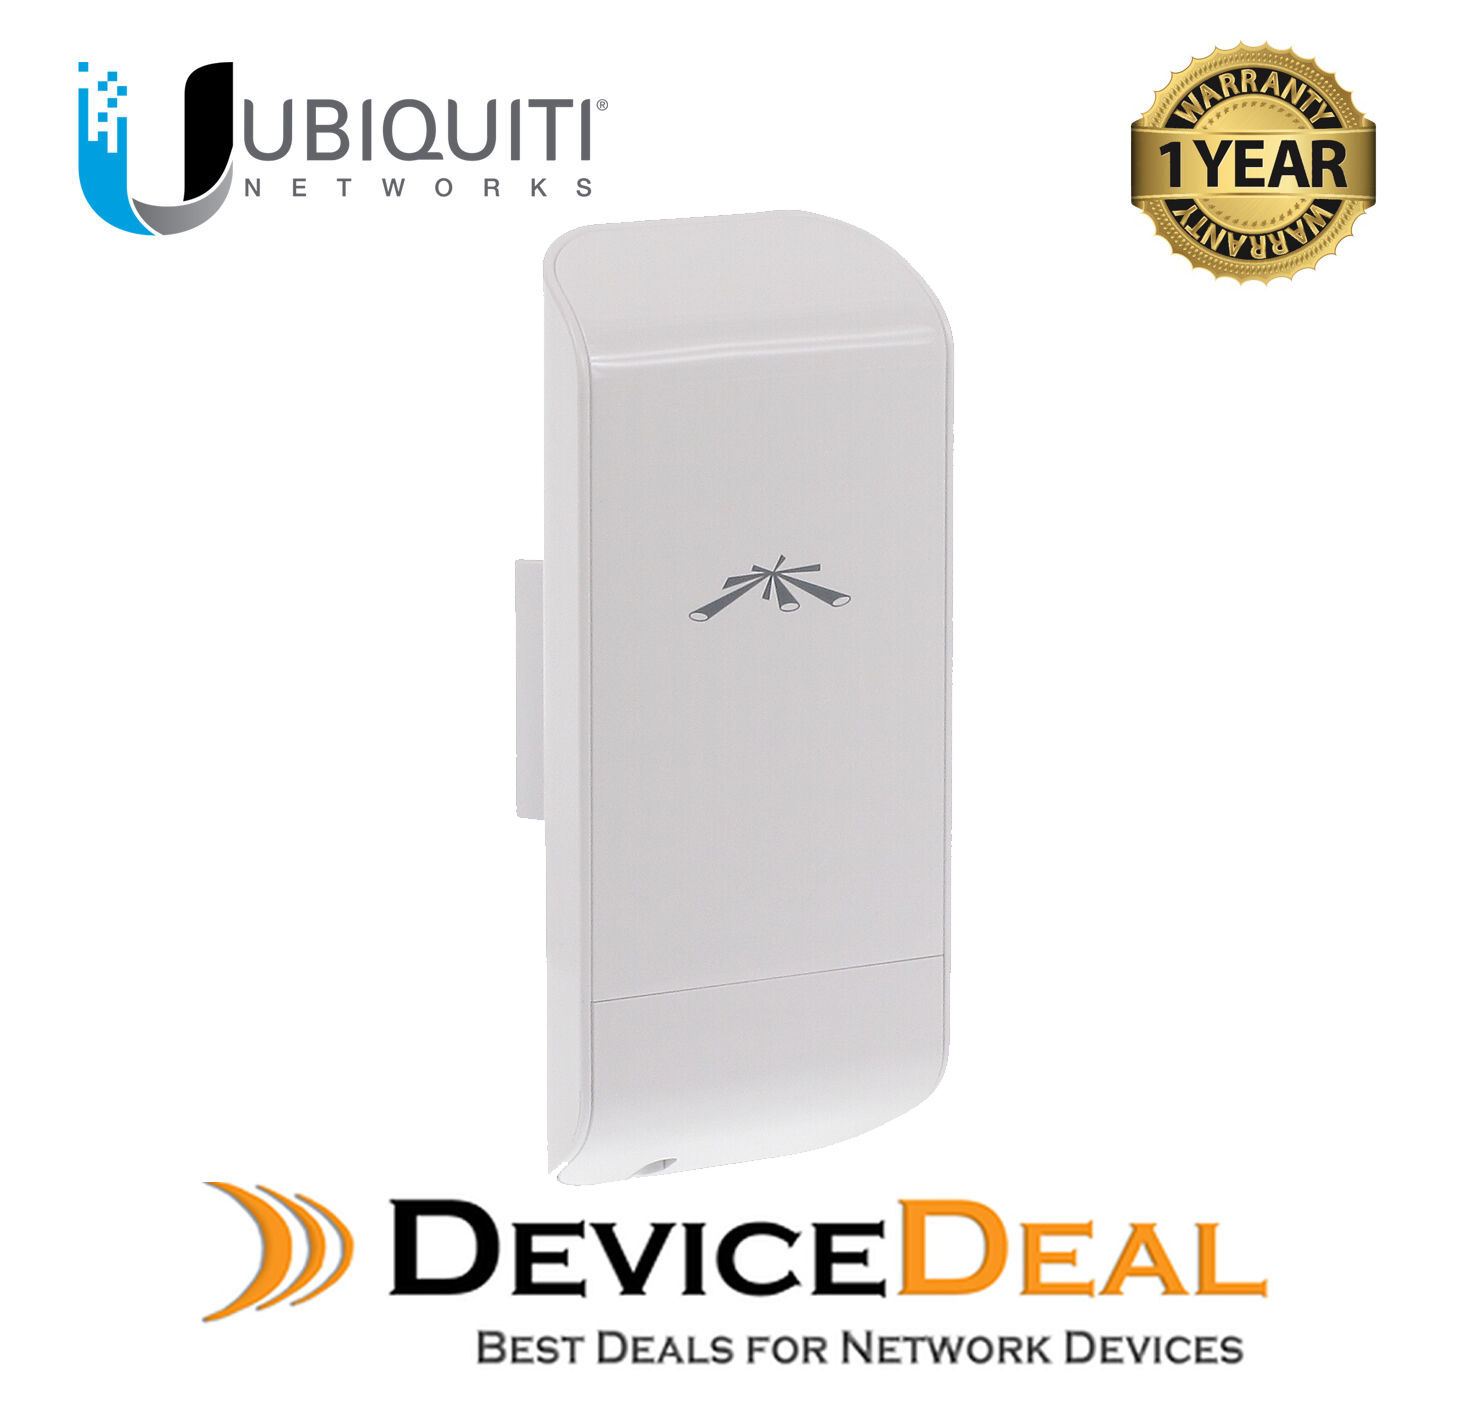 Ubiquiti Networks Locom2 24ghz 8dbi Indoor Outdoor Airmax Cpe One Tp Link 5dbi Desktop Omni Directional Antenna Tl Ant2405c 1 Of See More